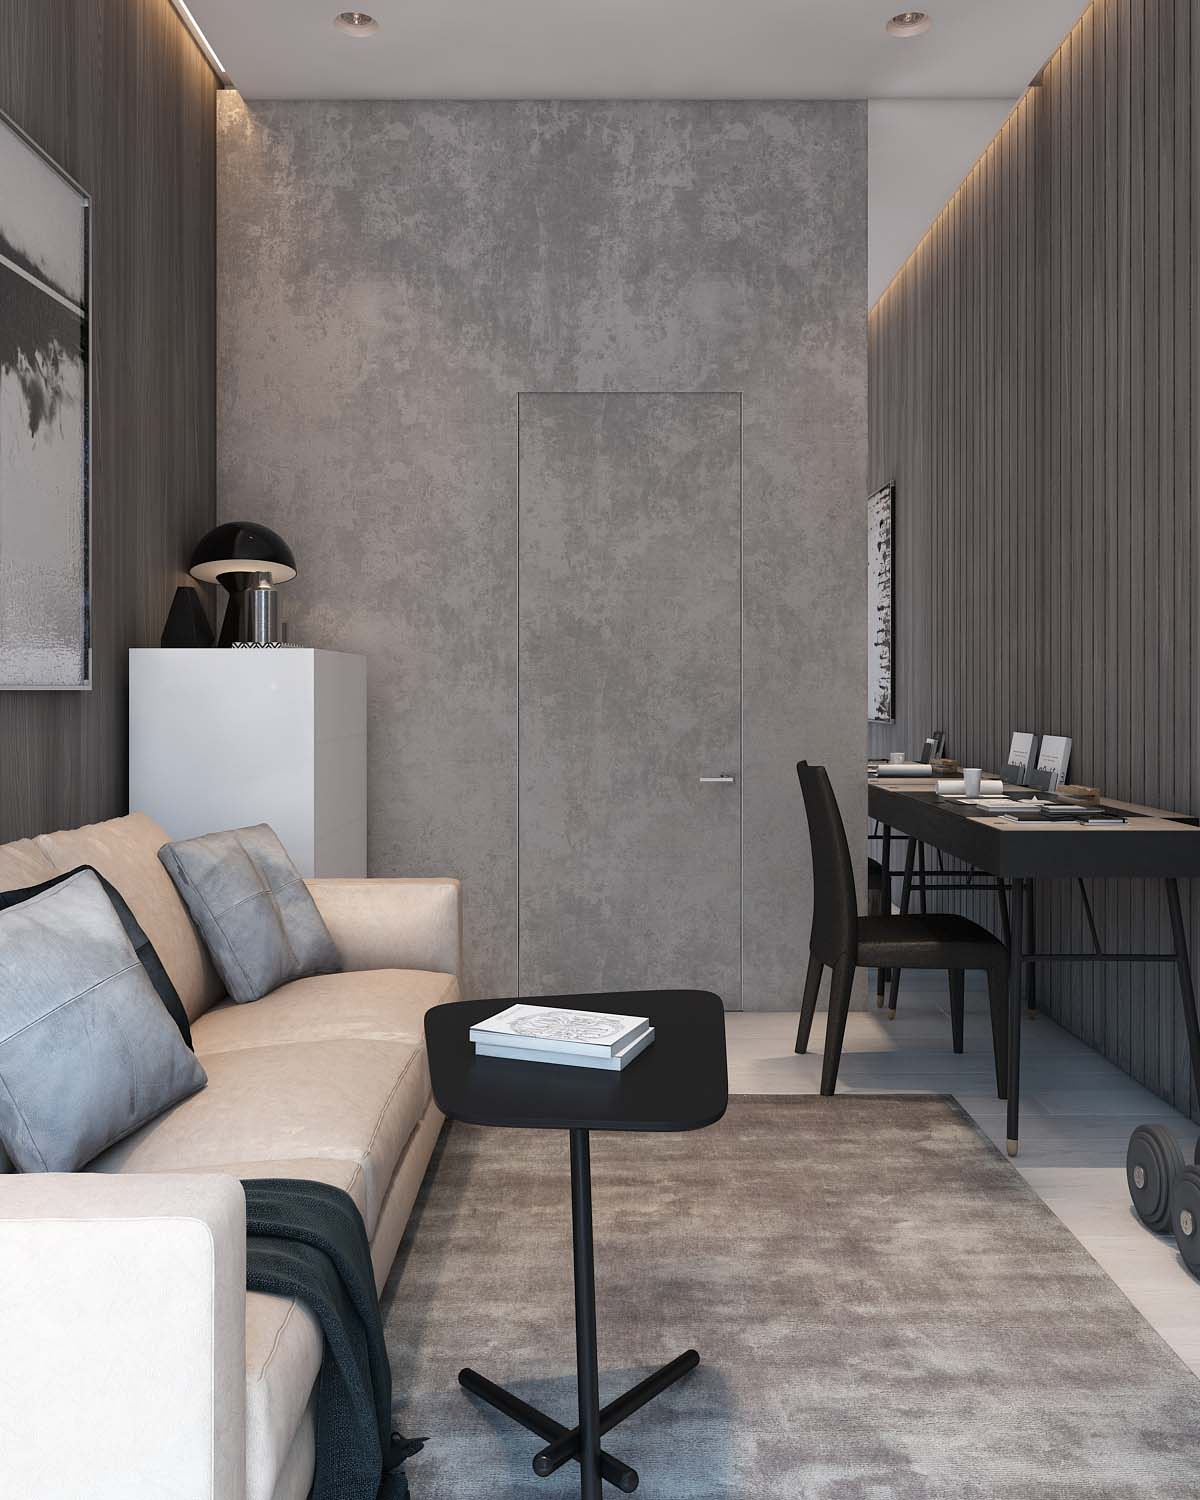 Neutral Color Scheme - A simple modern apartment in moscow